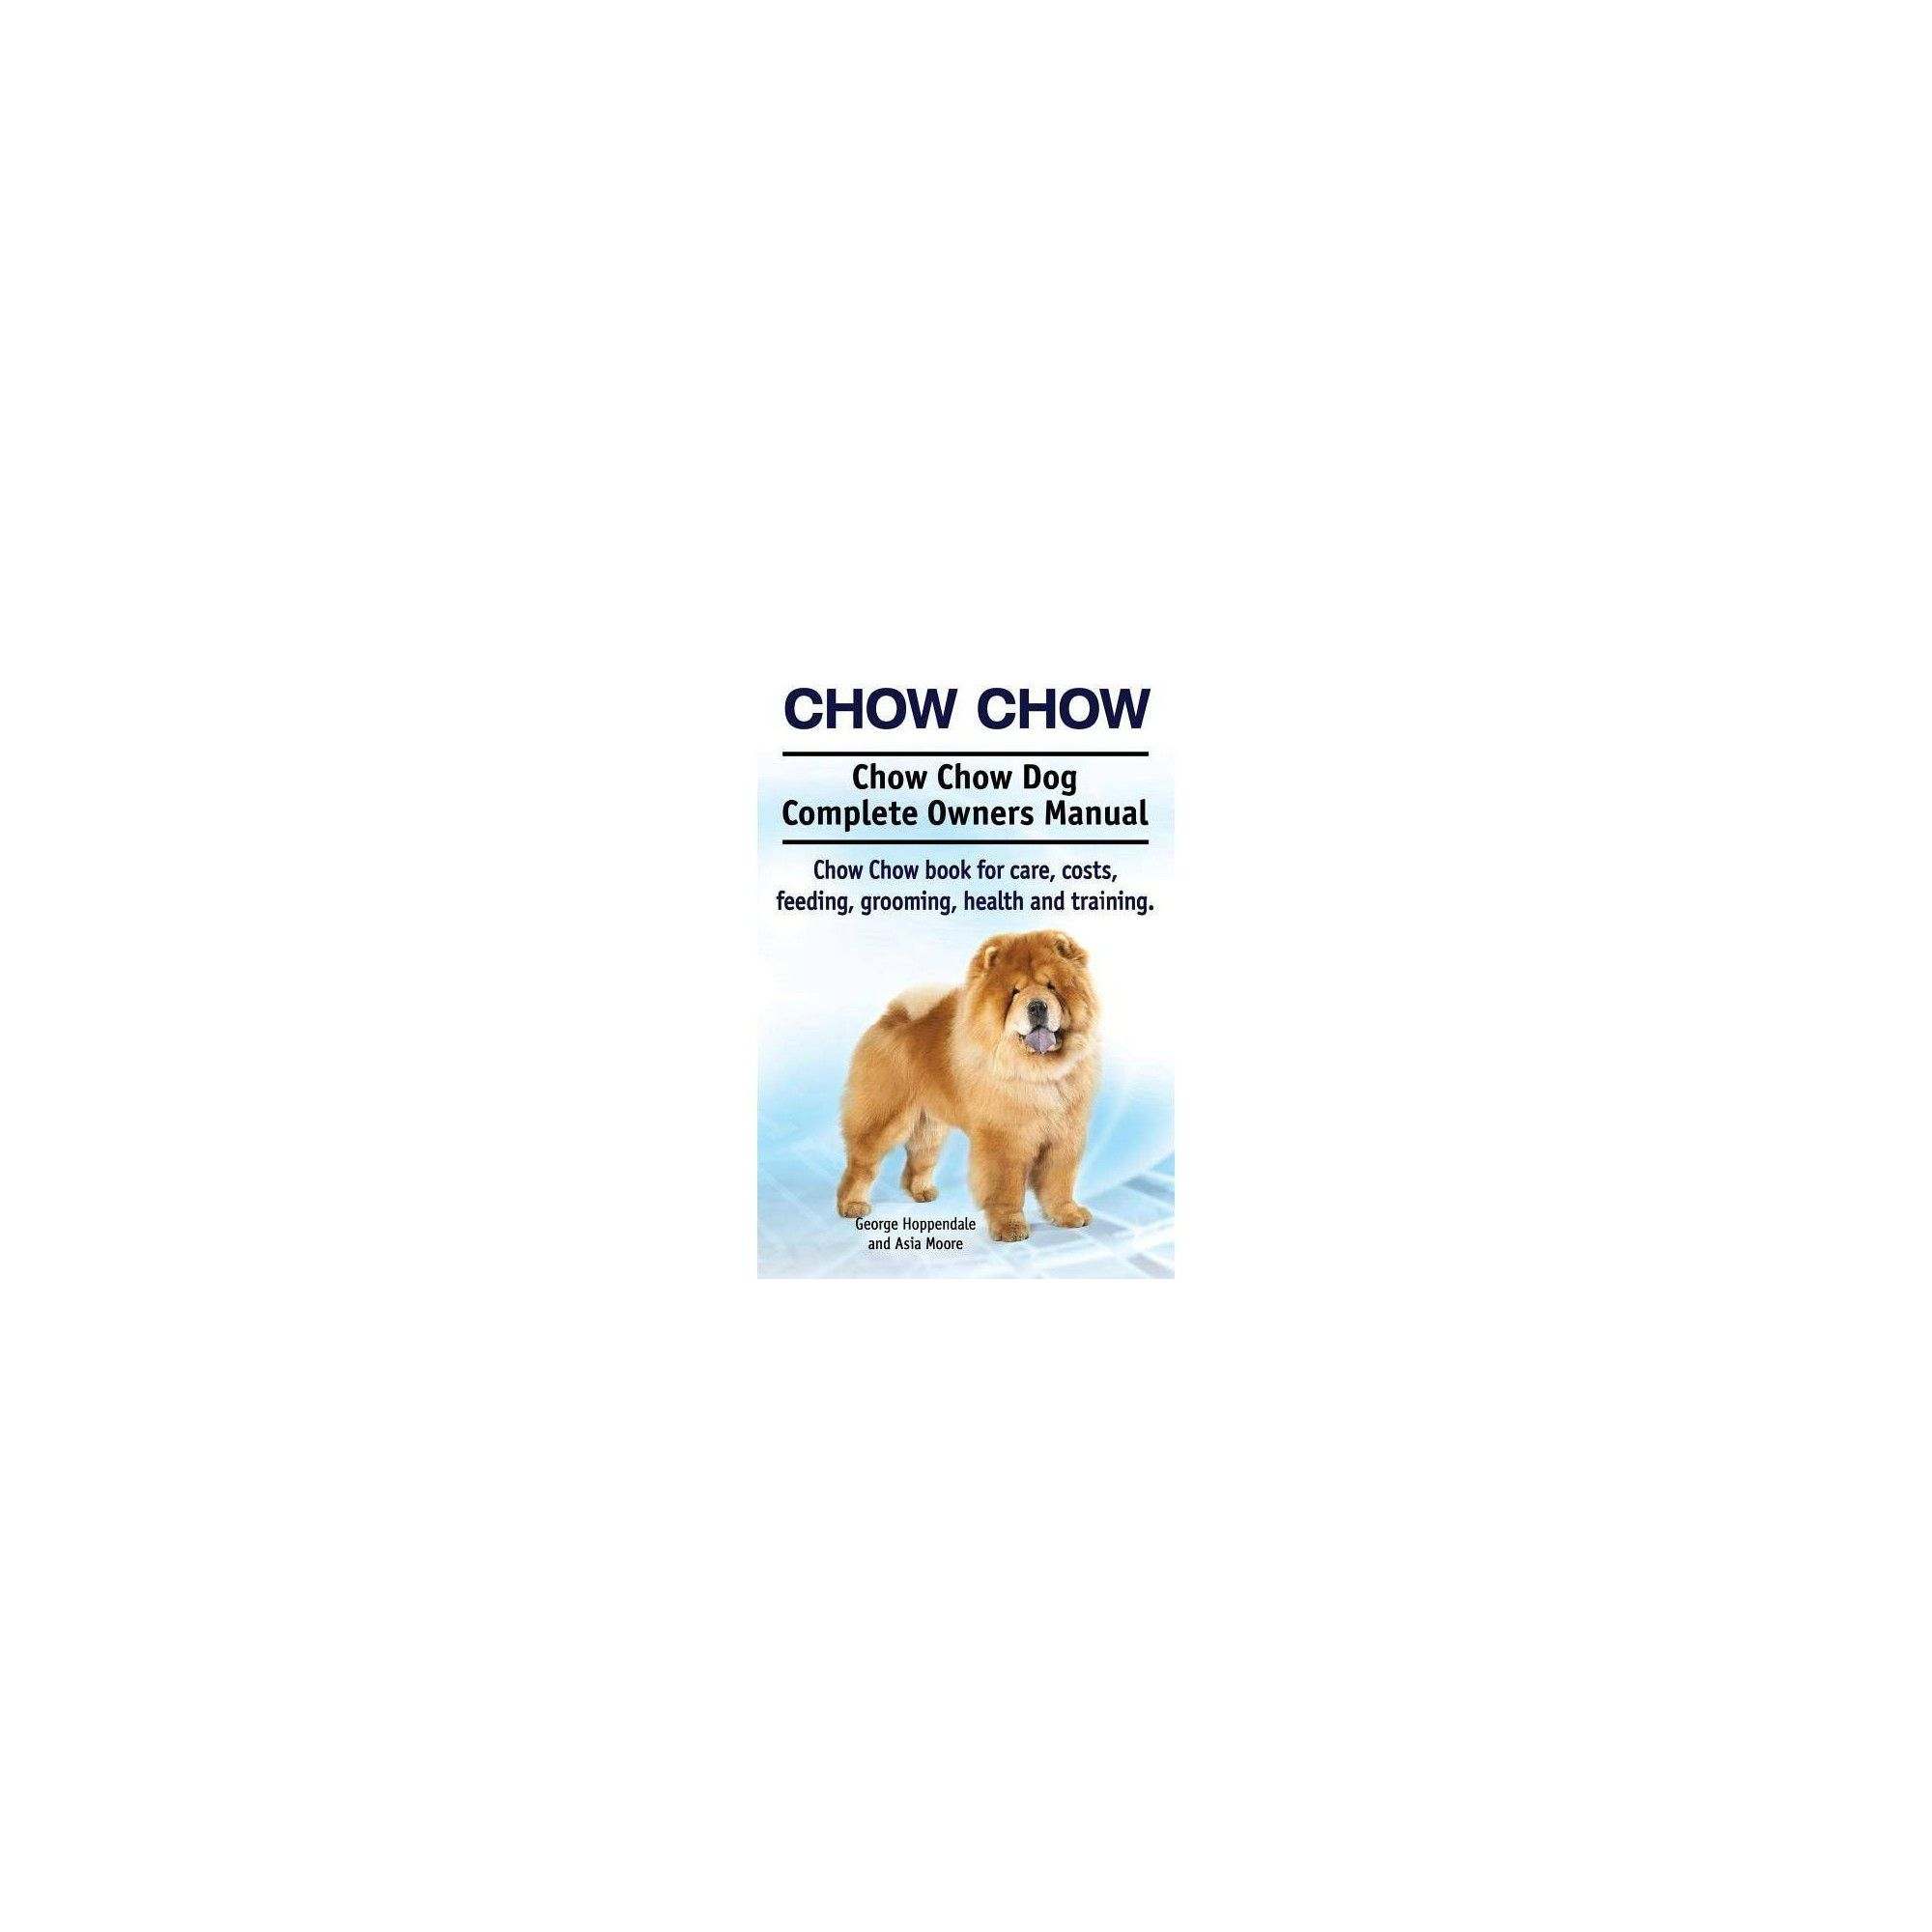 Chow Chow Chow Chow Dog Complete Owners Manual Chow Chow Book